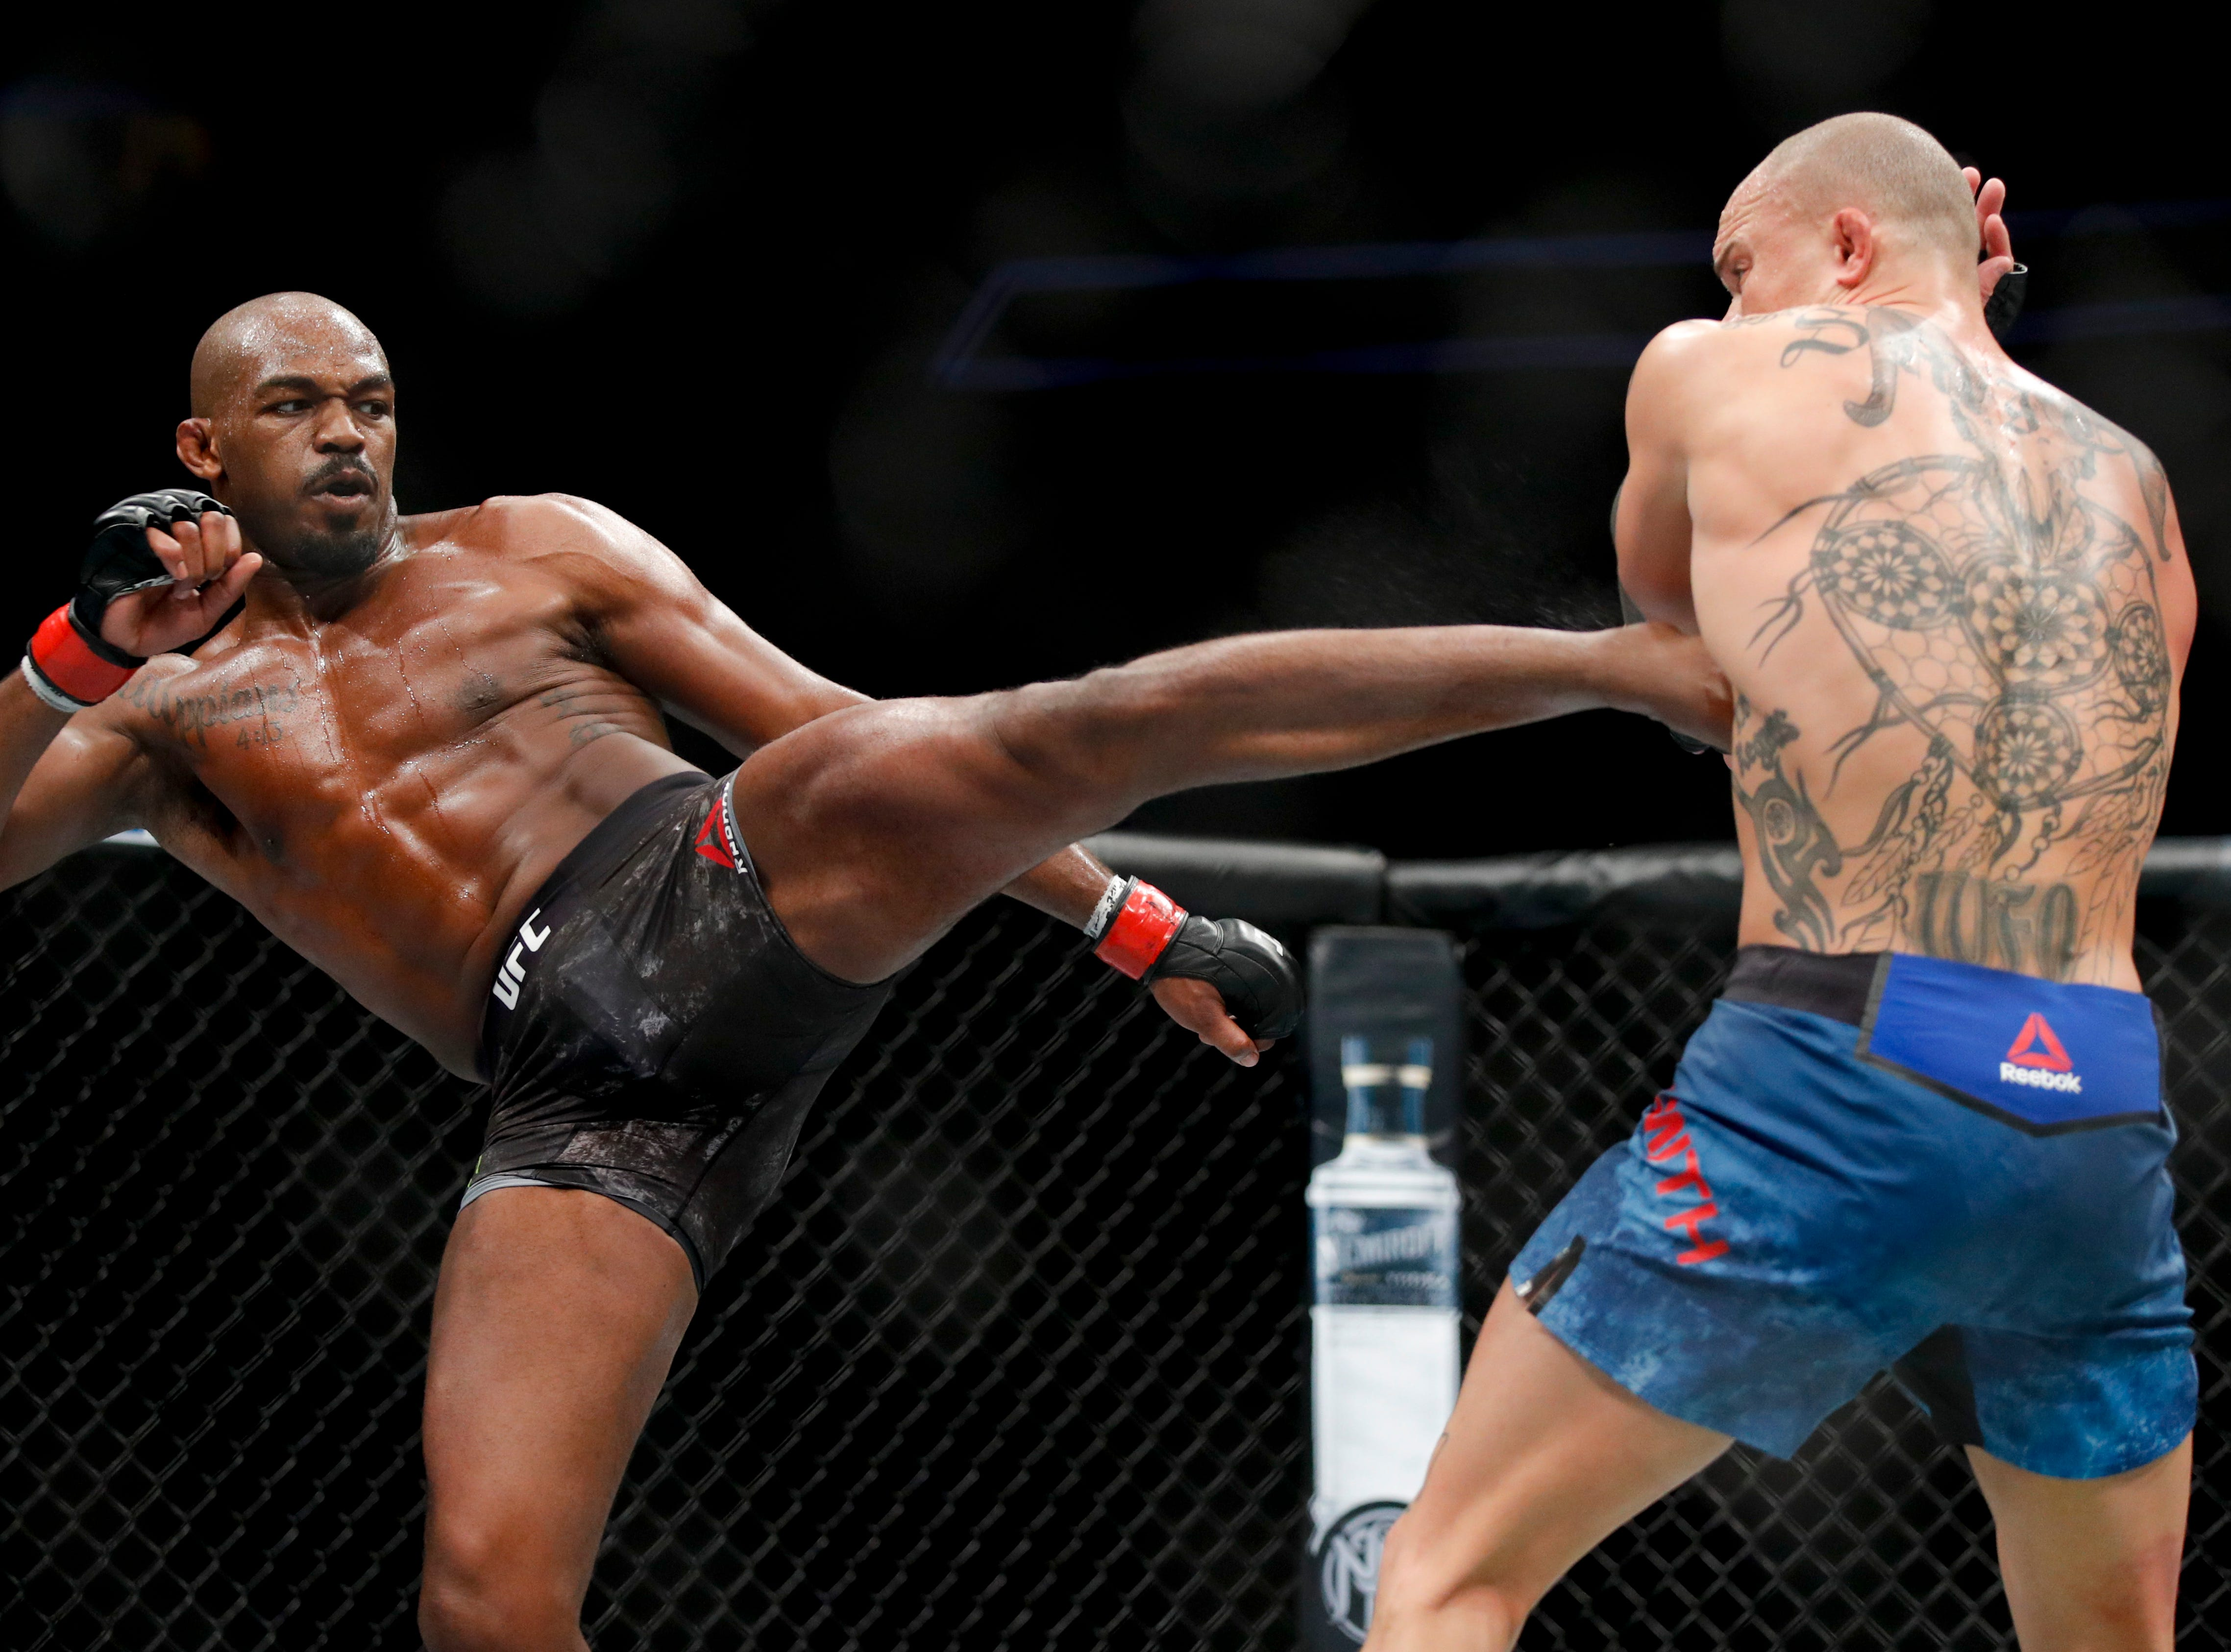 Jon Jones, left, kicks Anthony Smith during a light heavyweight mixed martial arts title bout at UFC 235, Saturday, March 2, 2019, in Las Vegas. (AP Photo/John Locher)